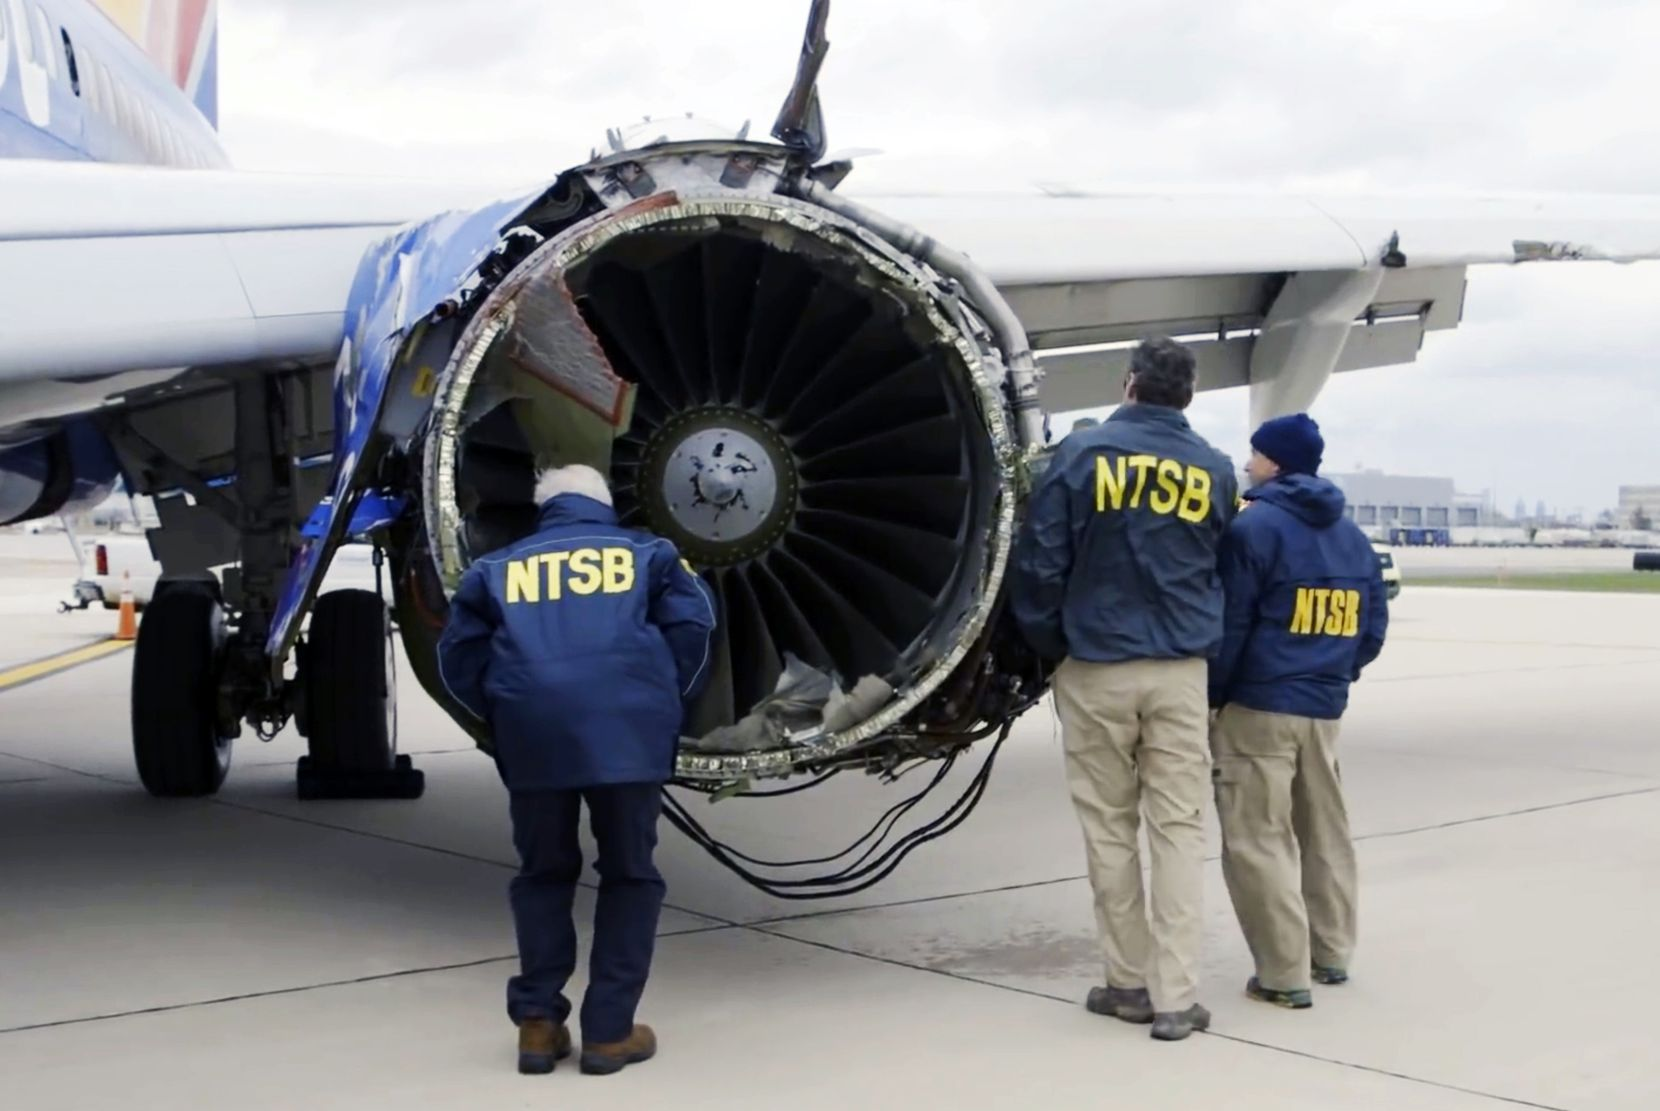 Investigators in Philadelphia examine the damaged engine that caused the death of a passenger on a Southwest Airlines plane on  April 17, 2018. The engine on the plane broke apart shortly after takeoff from La Guardia Airport in New York, killing a woman sitting in a window seat near the blast. (NTSB)